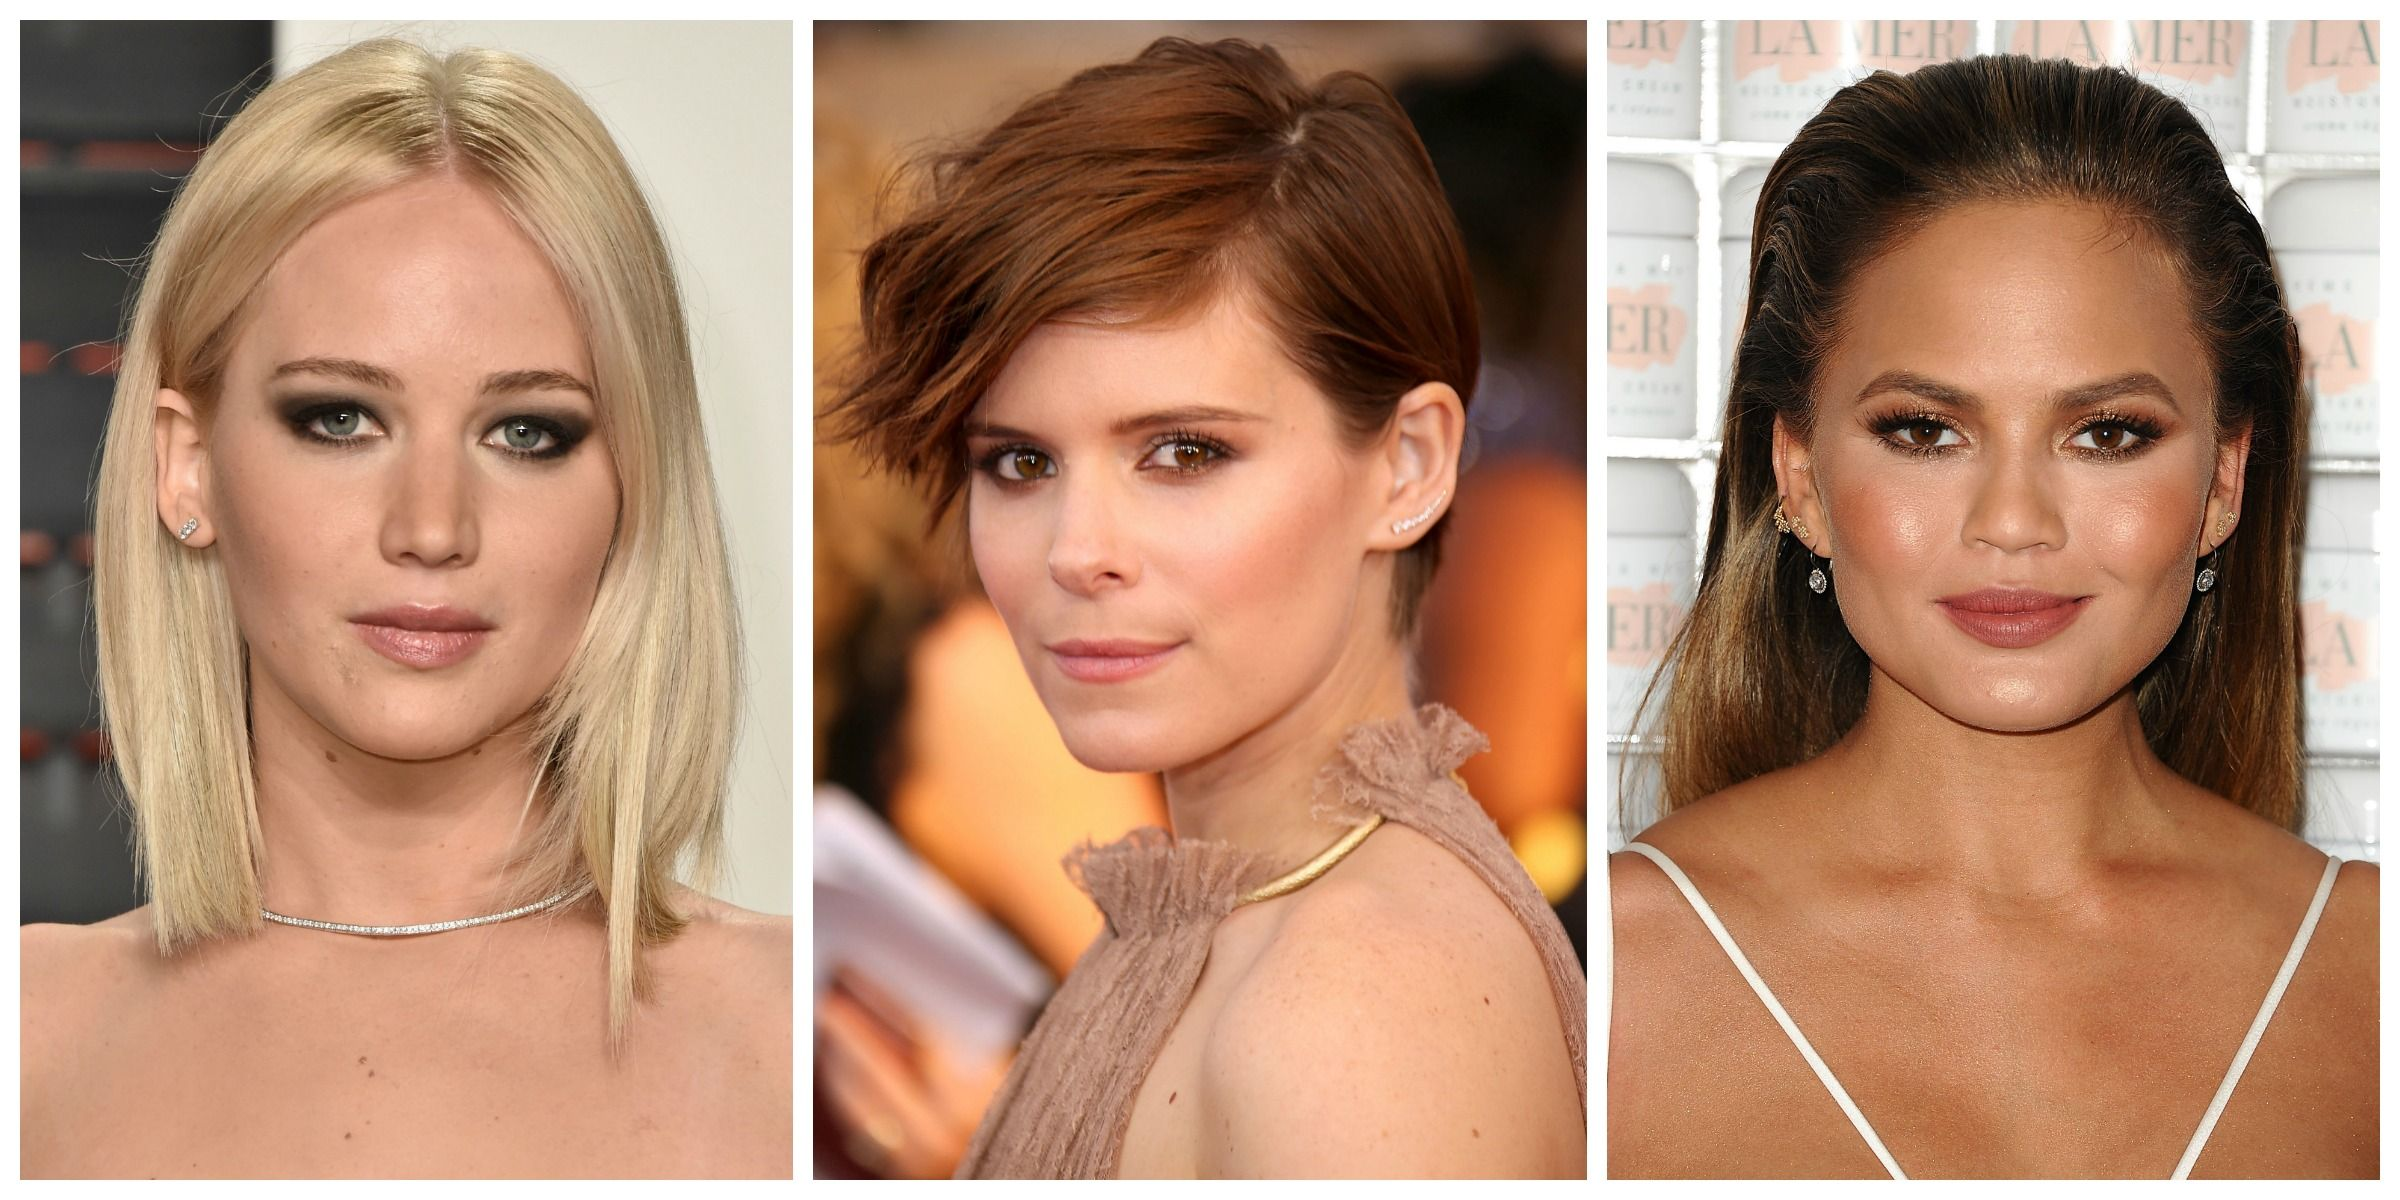 Hairstyles for Round Faces - Best Haircuts for Round Face Shape